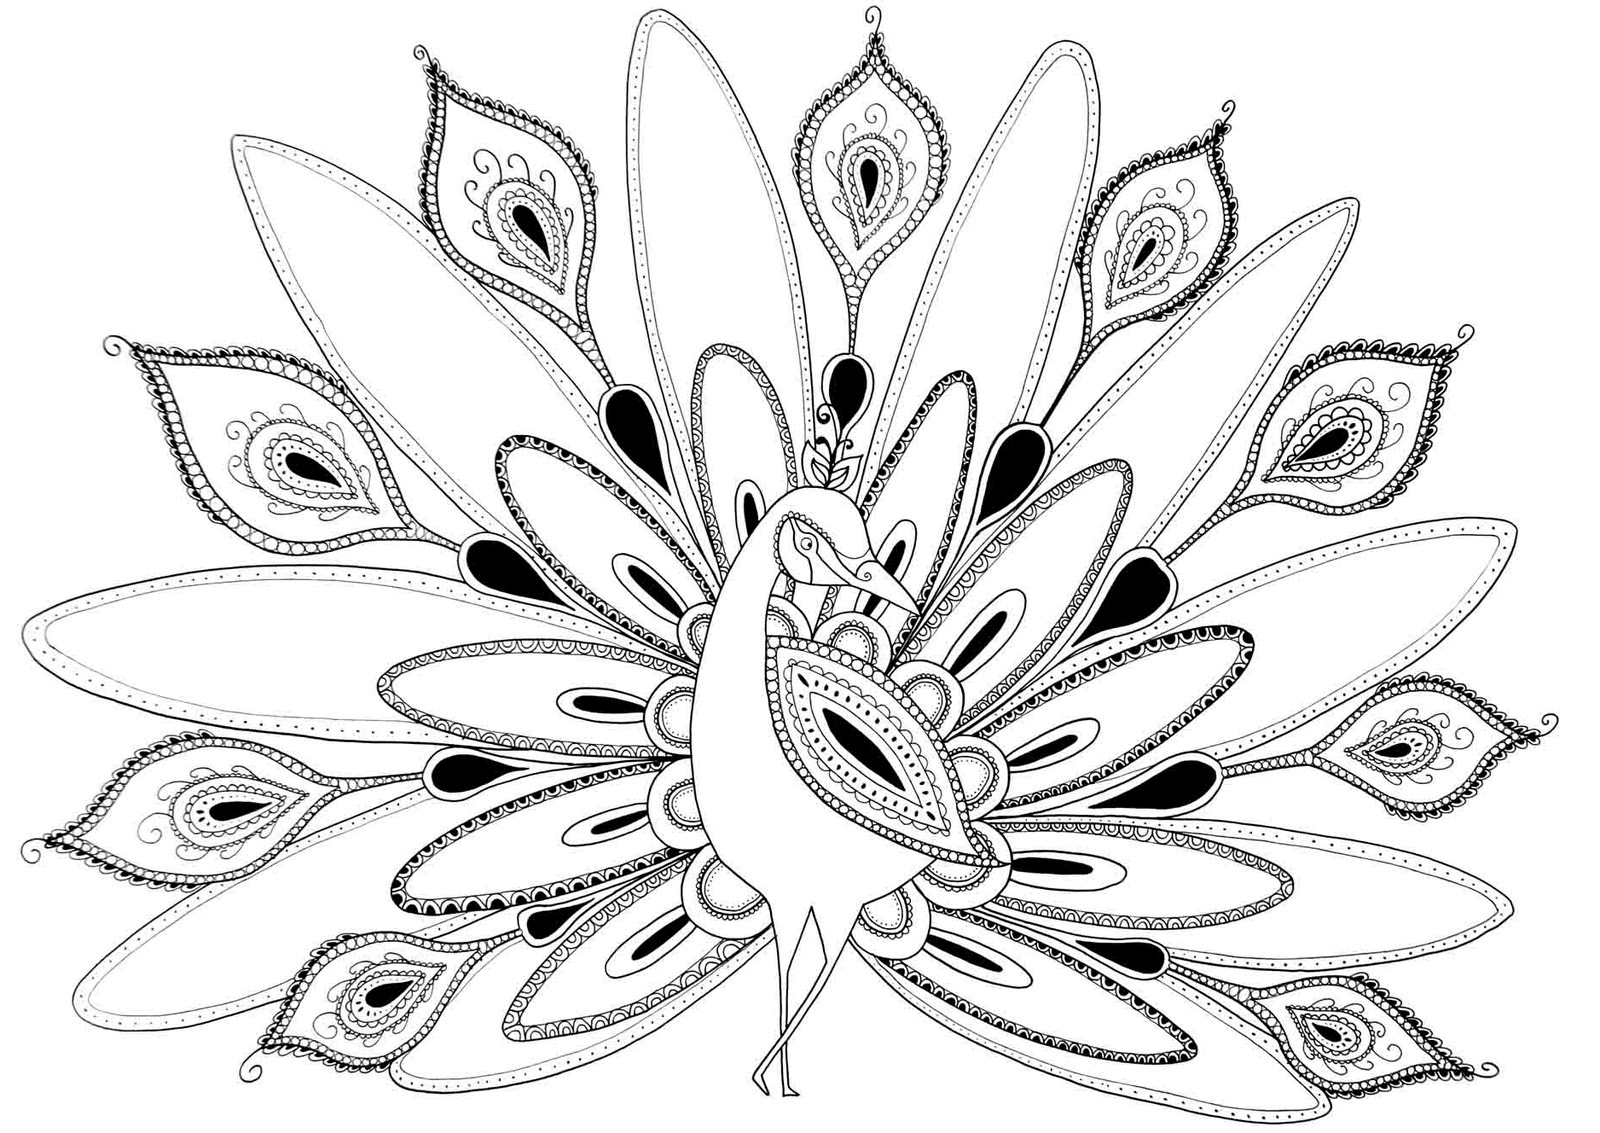 Lps coloring pages peacock ~ Peacock Drawing Kids at GetDrawings.com | Free for ...